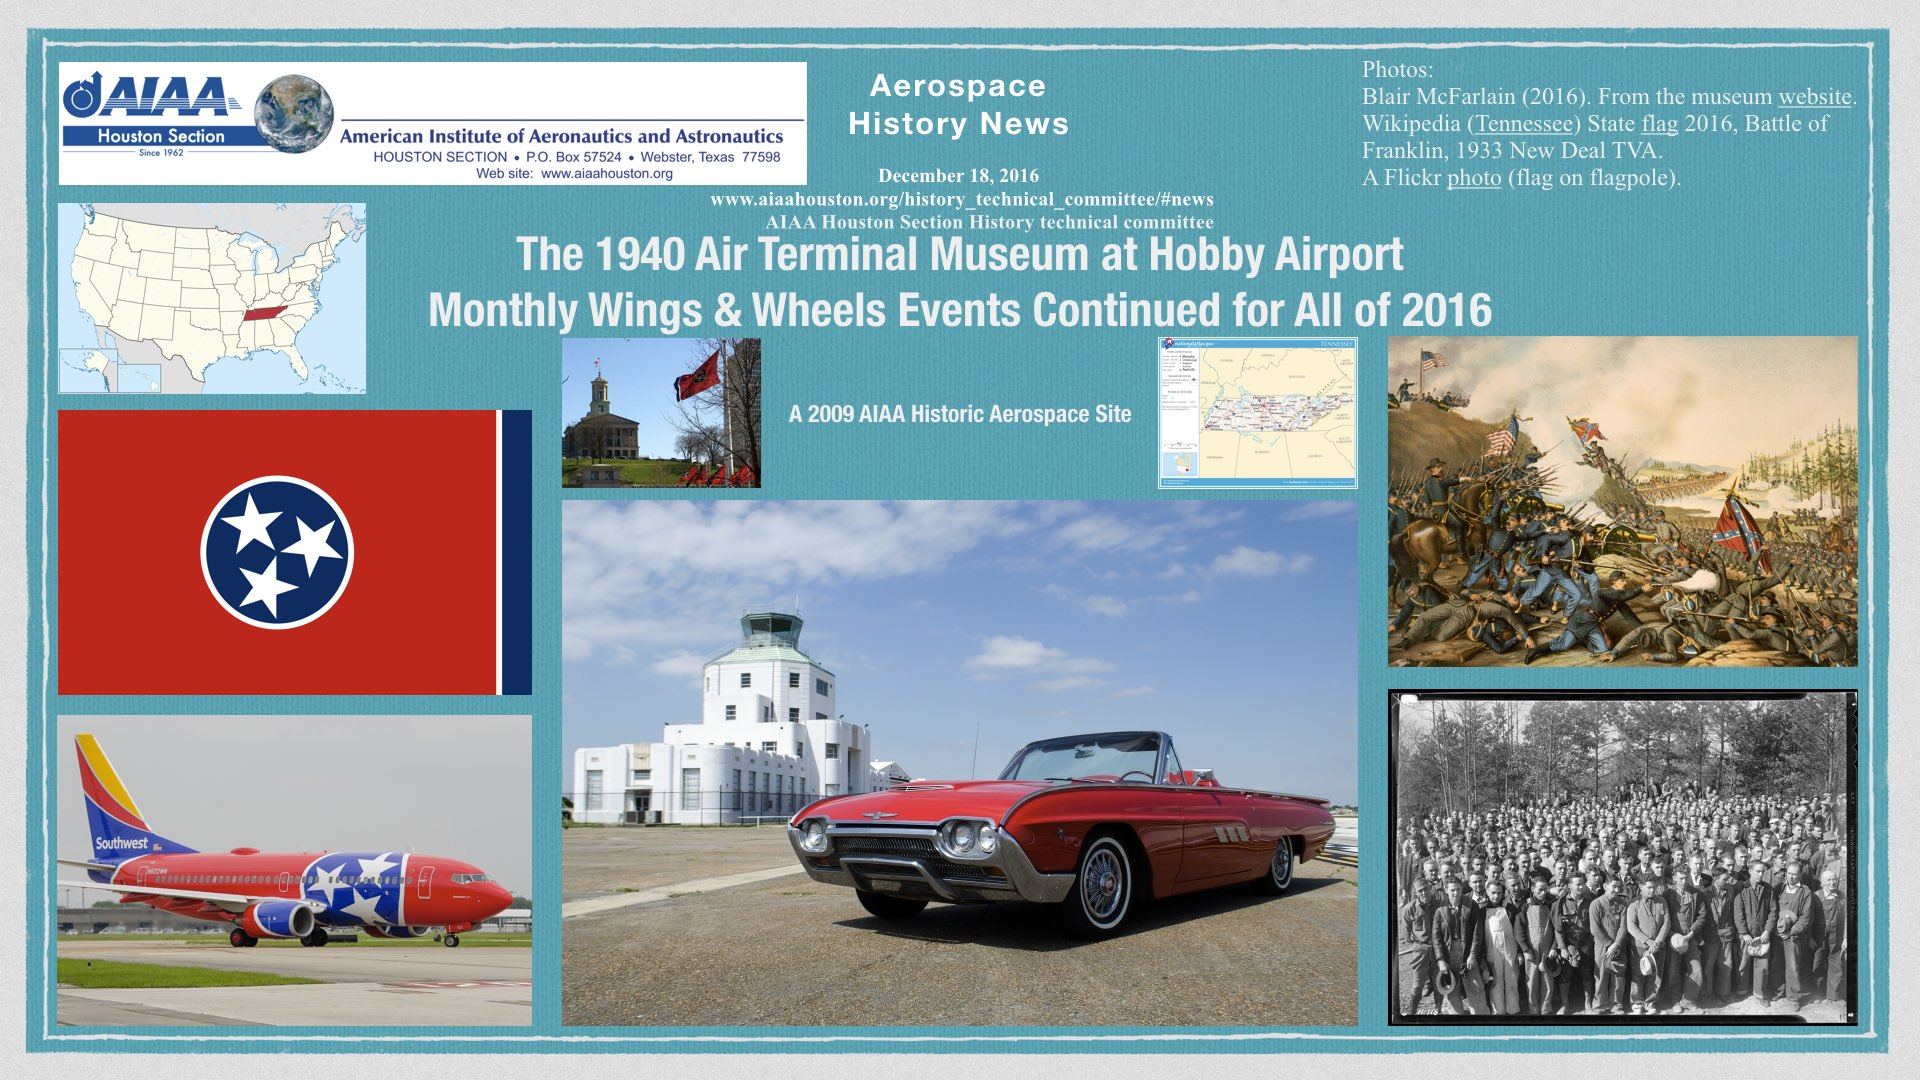 Above: The 1940 Air Terminal Museum at Hobby Airport, Monthly Wings & Wheels Events Continued for All of 2016. A 2009 AIAA Historic Aerospace Site. (Click to zoom.)